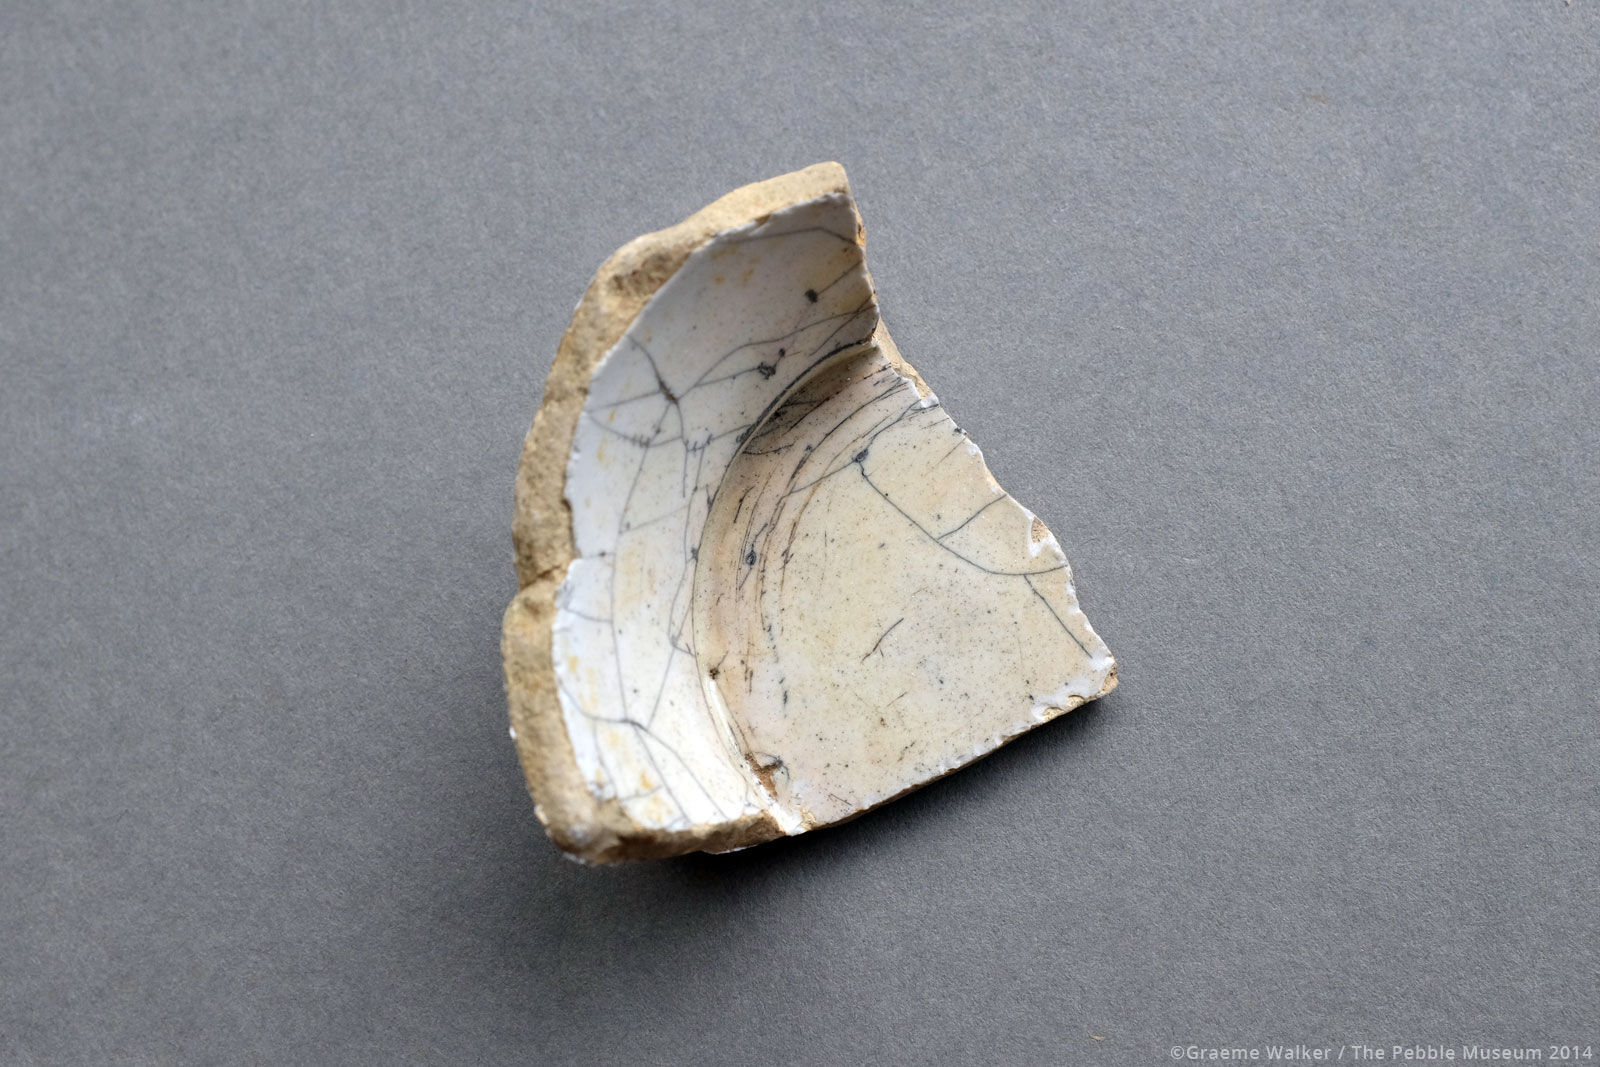 Cracked White Ceramic © Graeme Walker / The Pebble Museum 2019